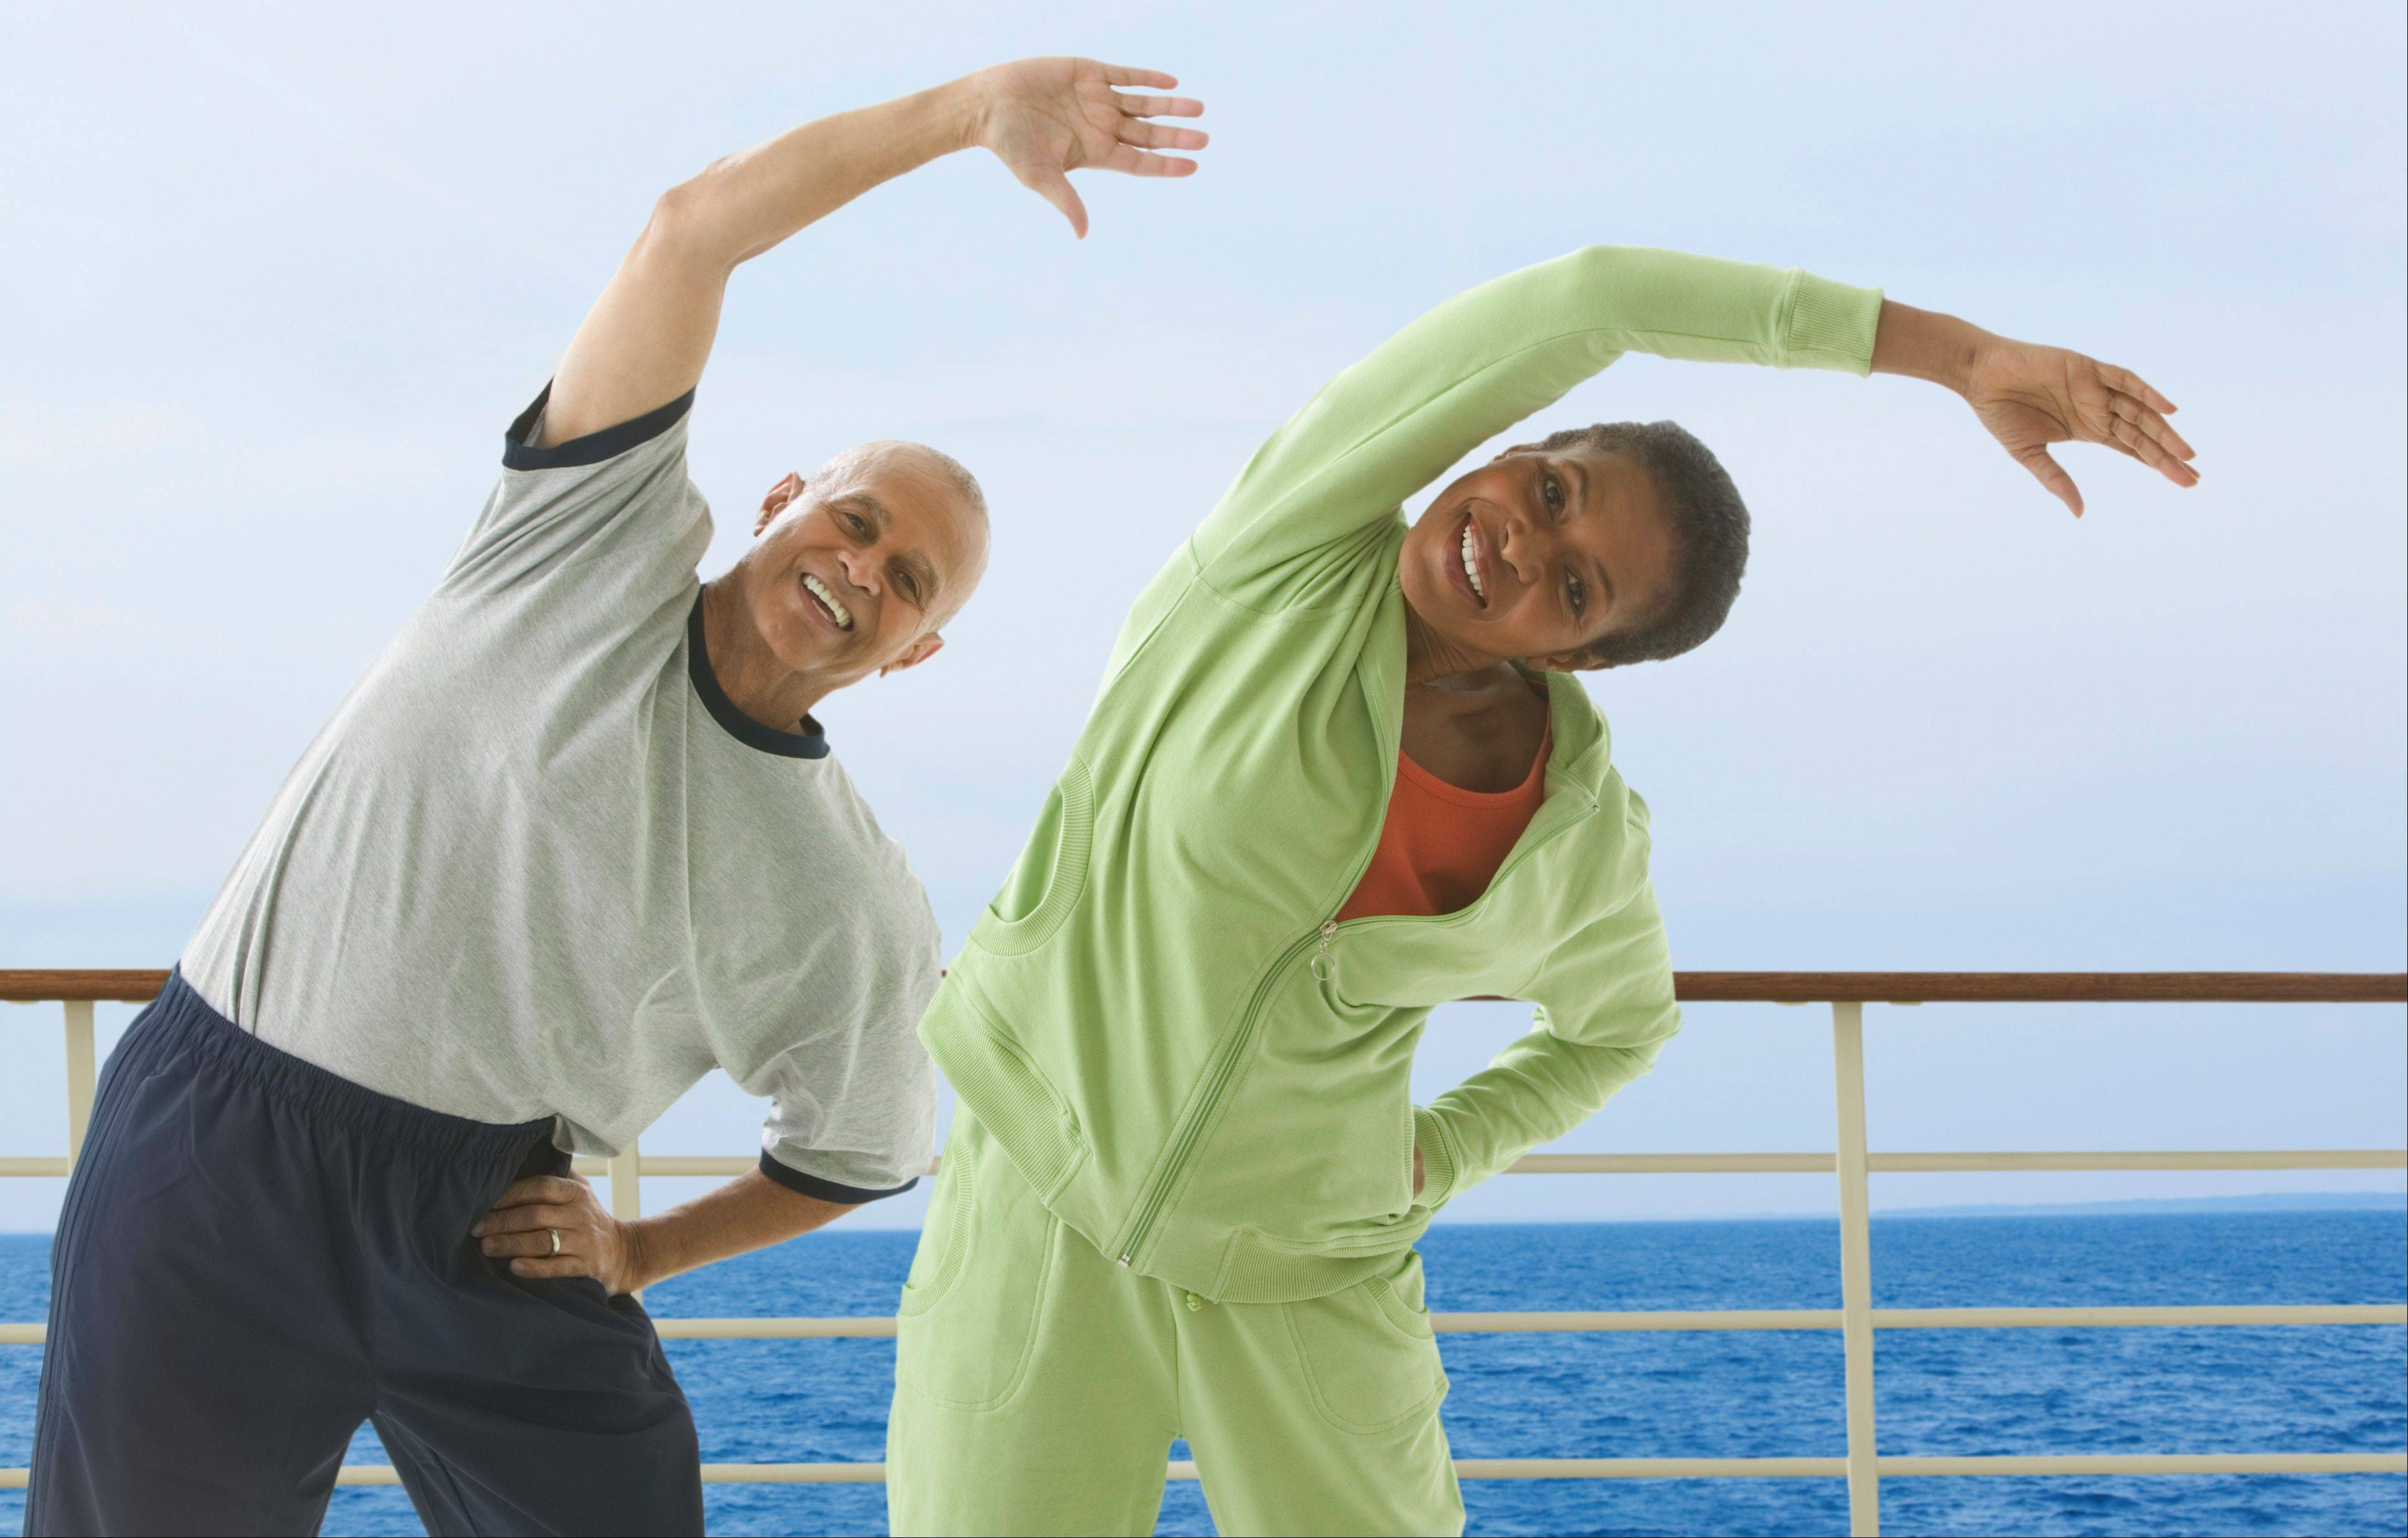 Familiarize yourself with the ship's exercise options in order stay fit while cruising.